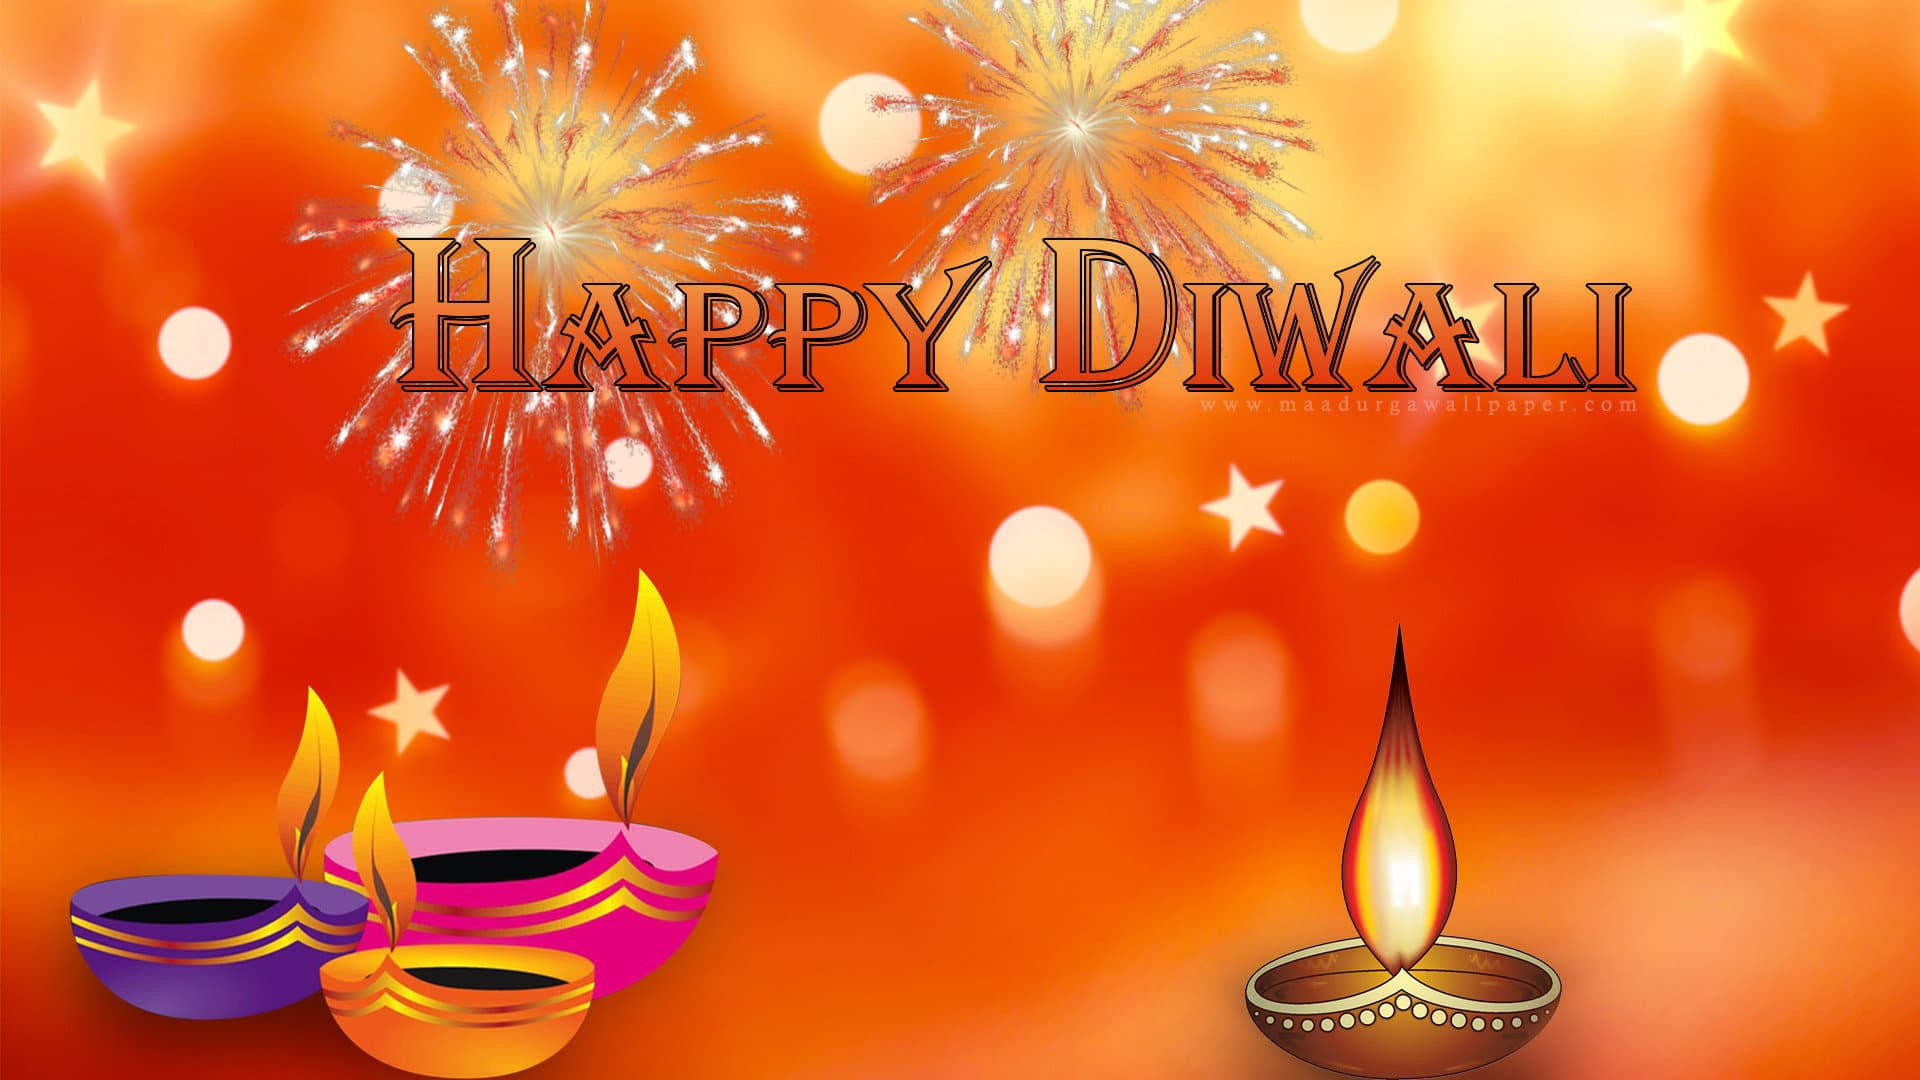 Happy Diwali Desktop Wallpapers Free Hd Images